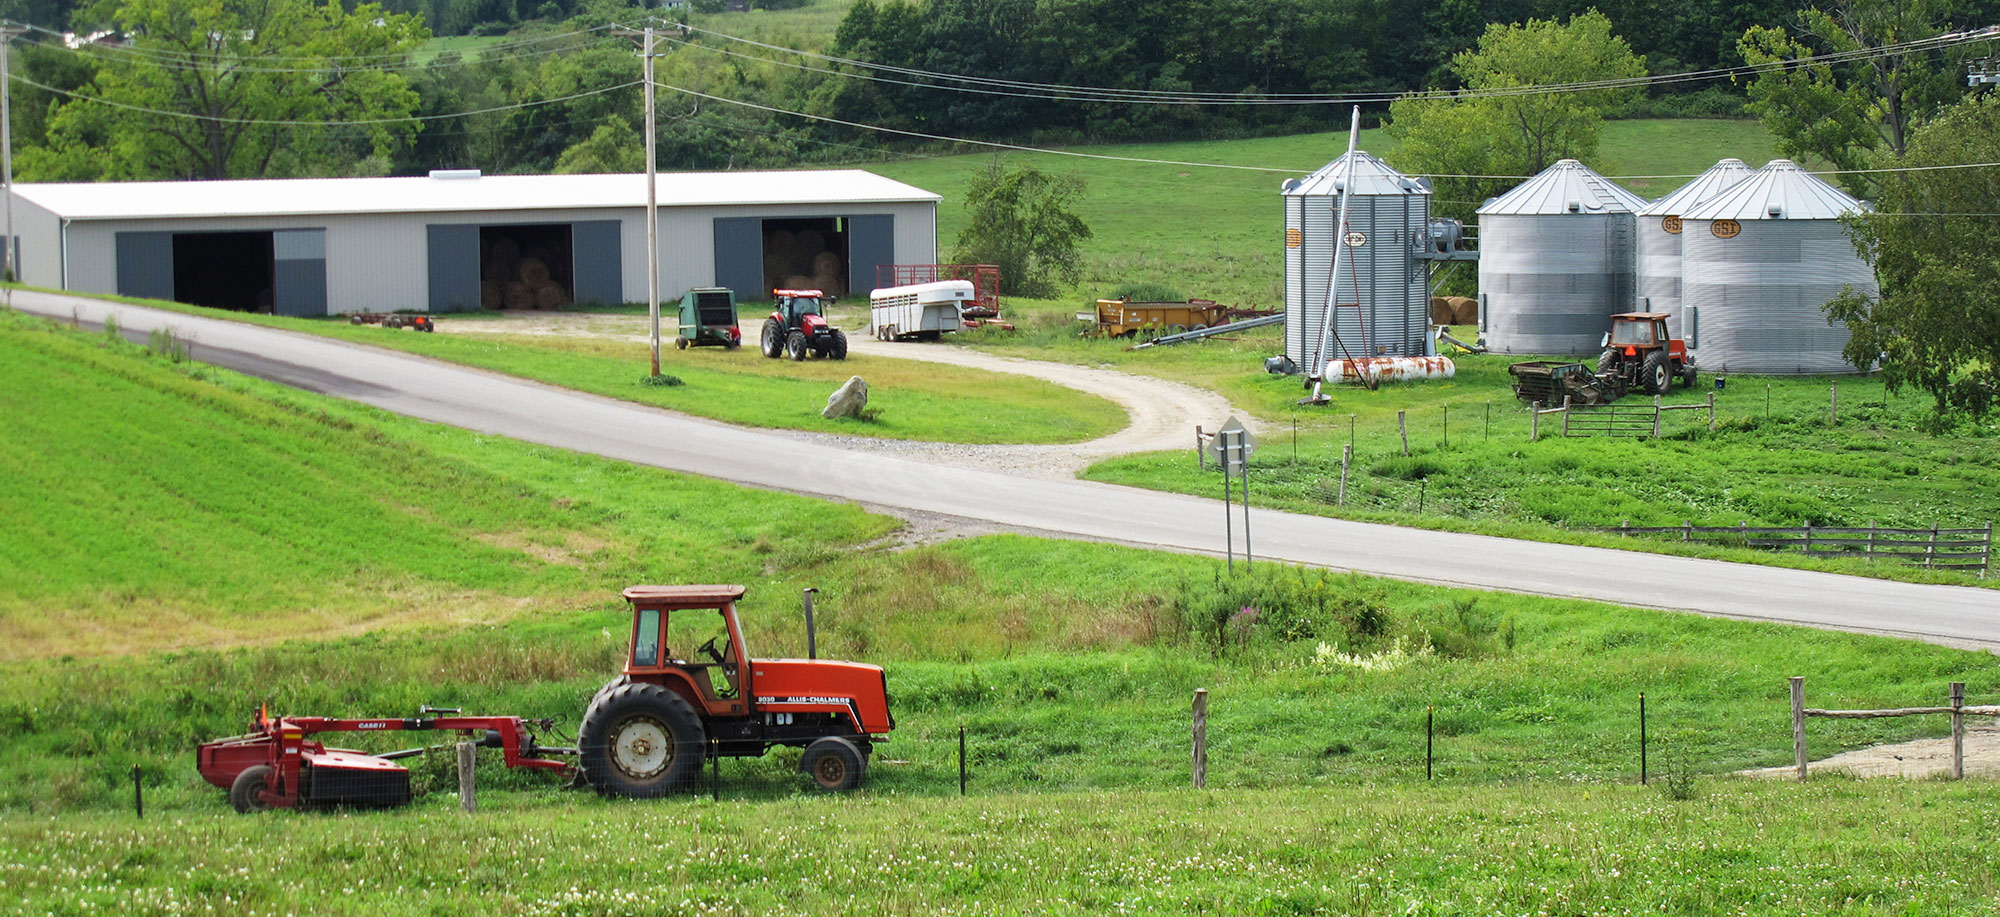 Tractors and Silos